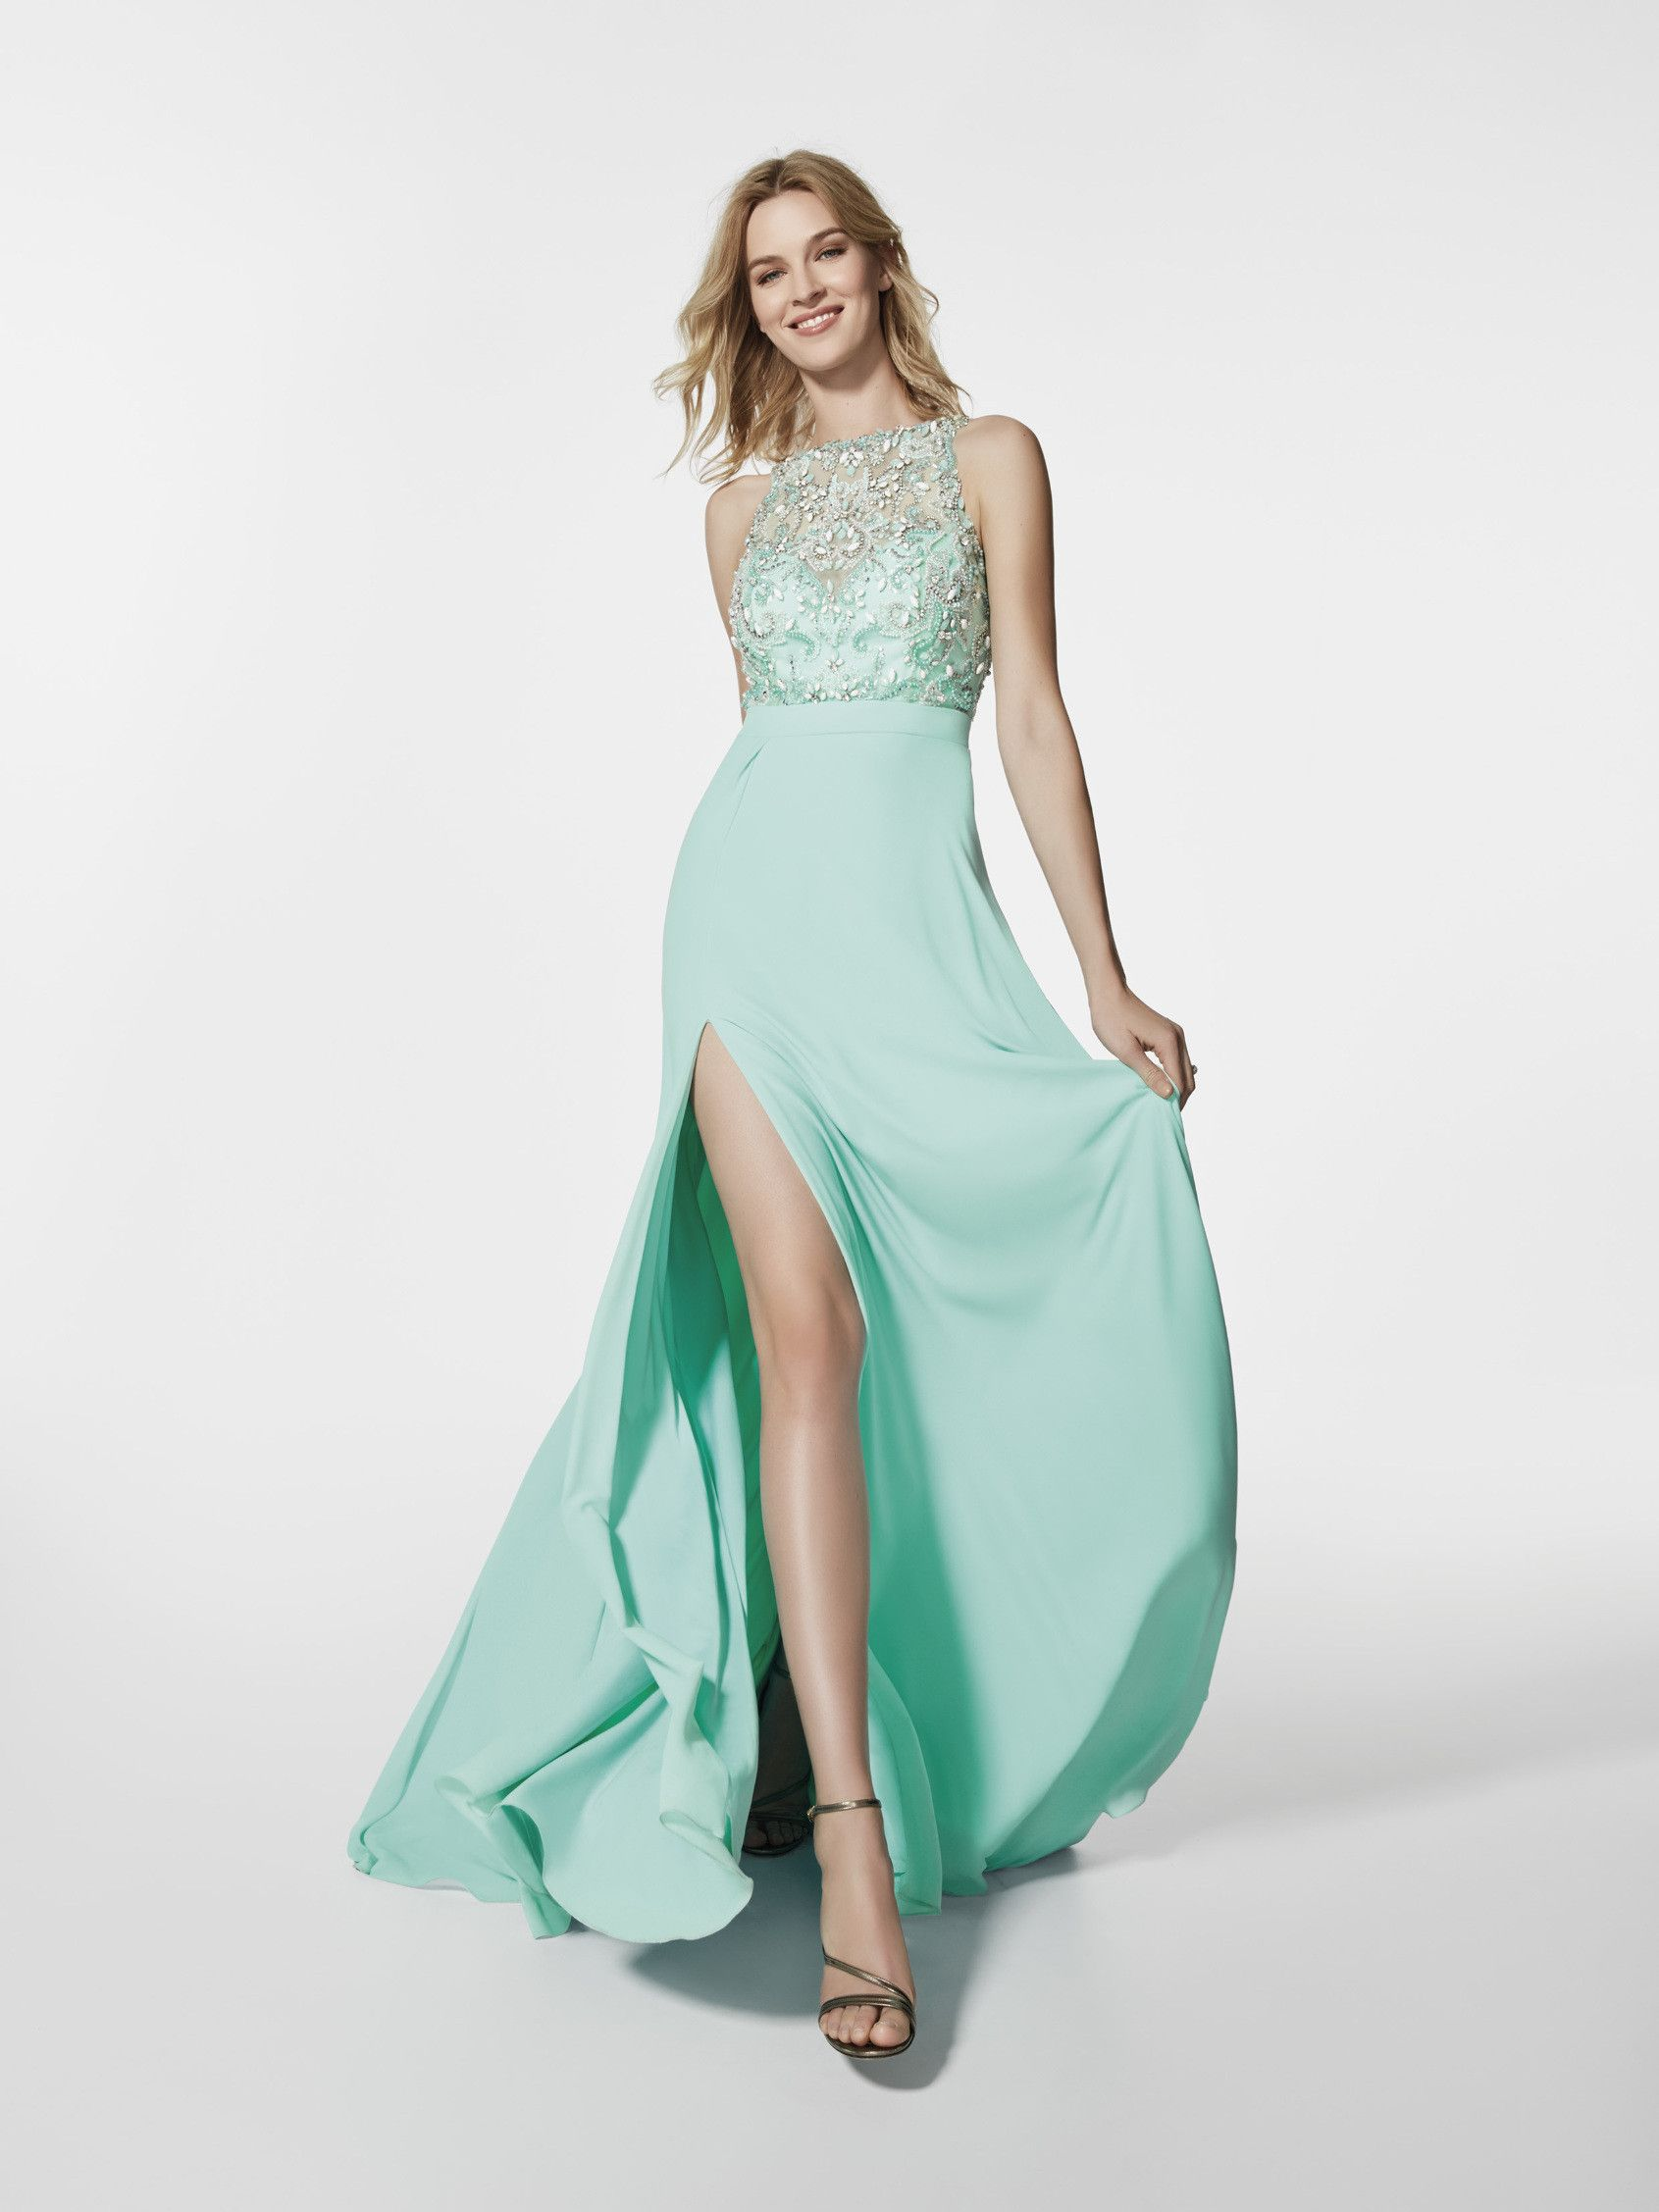 Photo turquoise cocktail dress (62009) | Lianne Sweet 16 | Pinterest ...